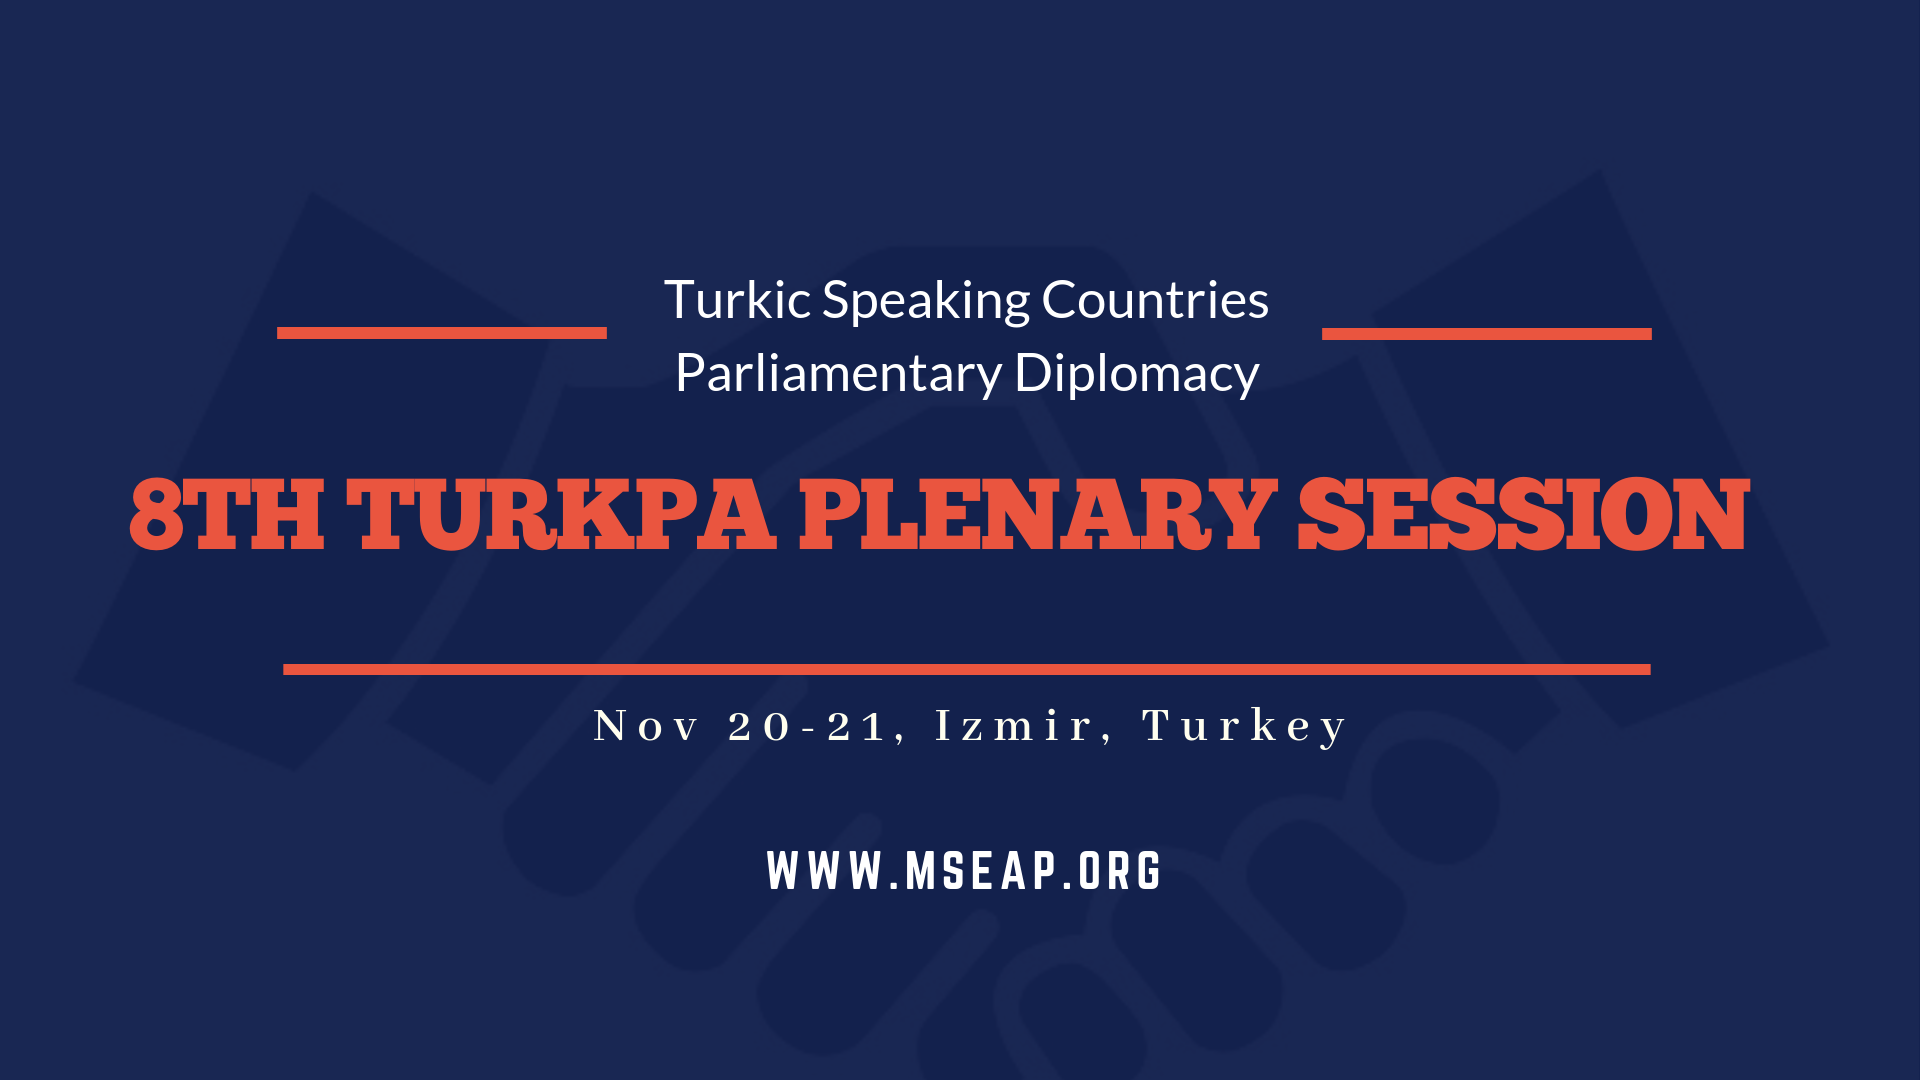 8th TURKPA plenary session held on November 20-21 in Izmir, Turkey